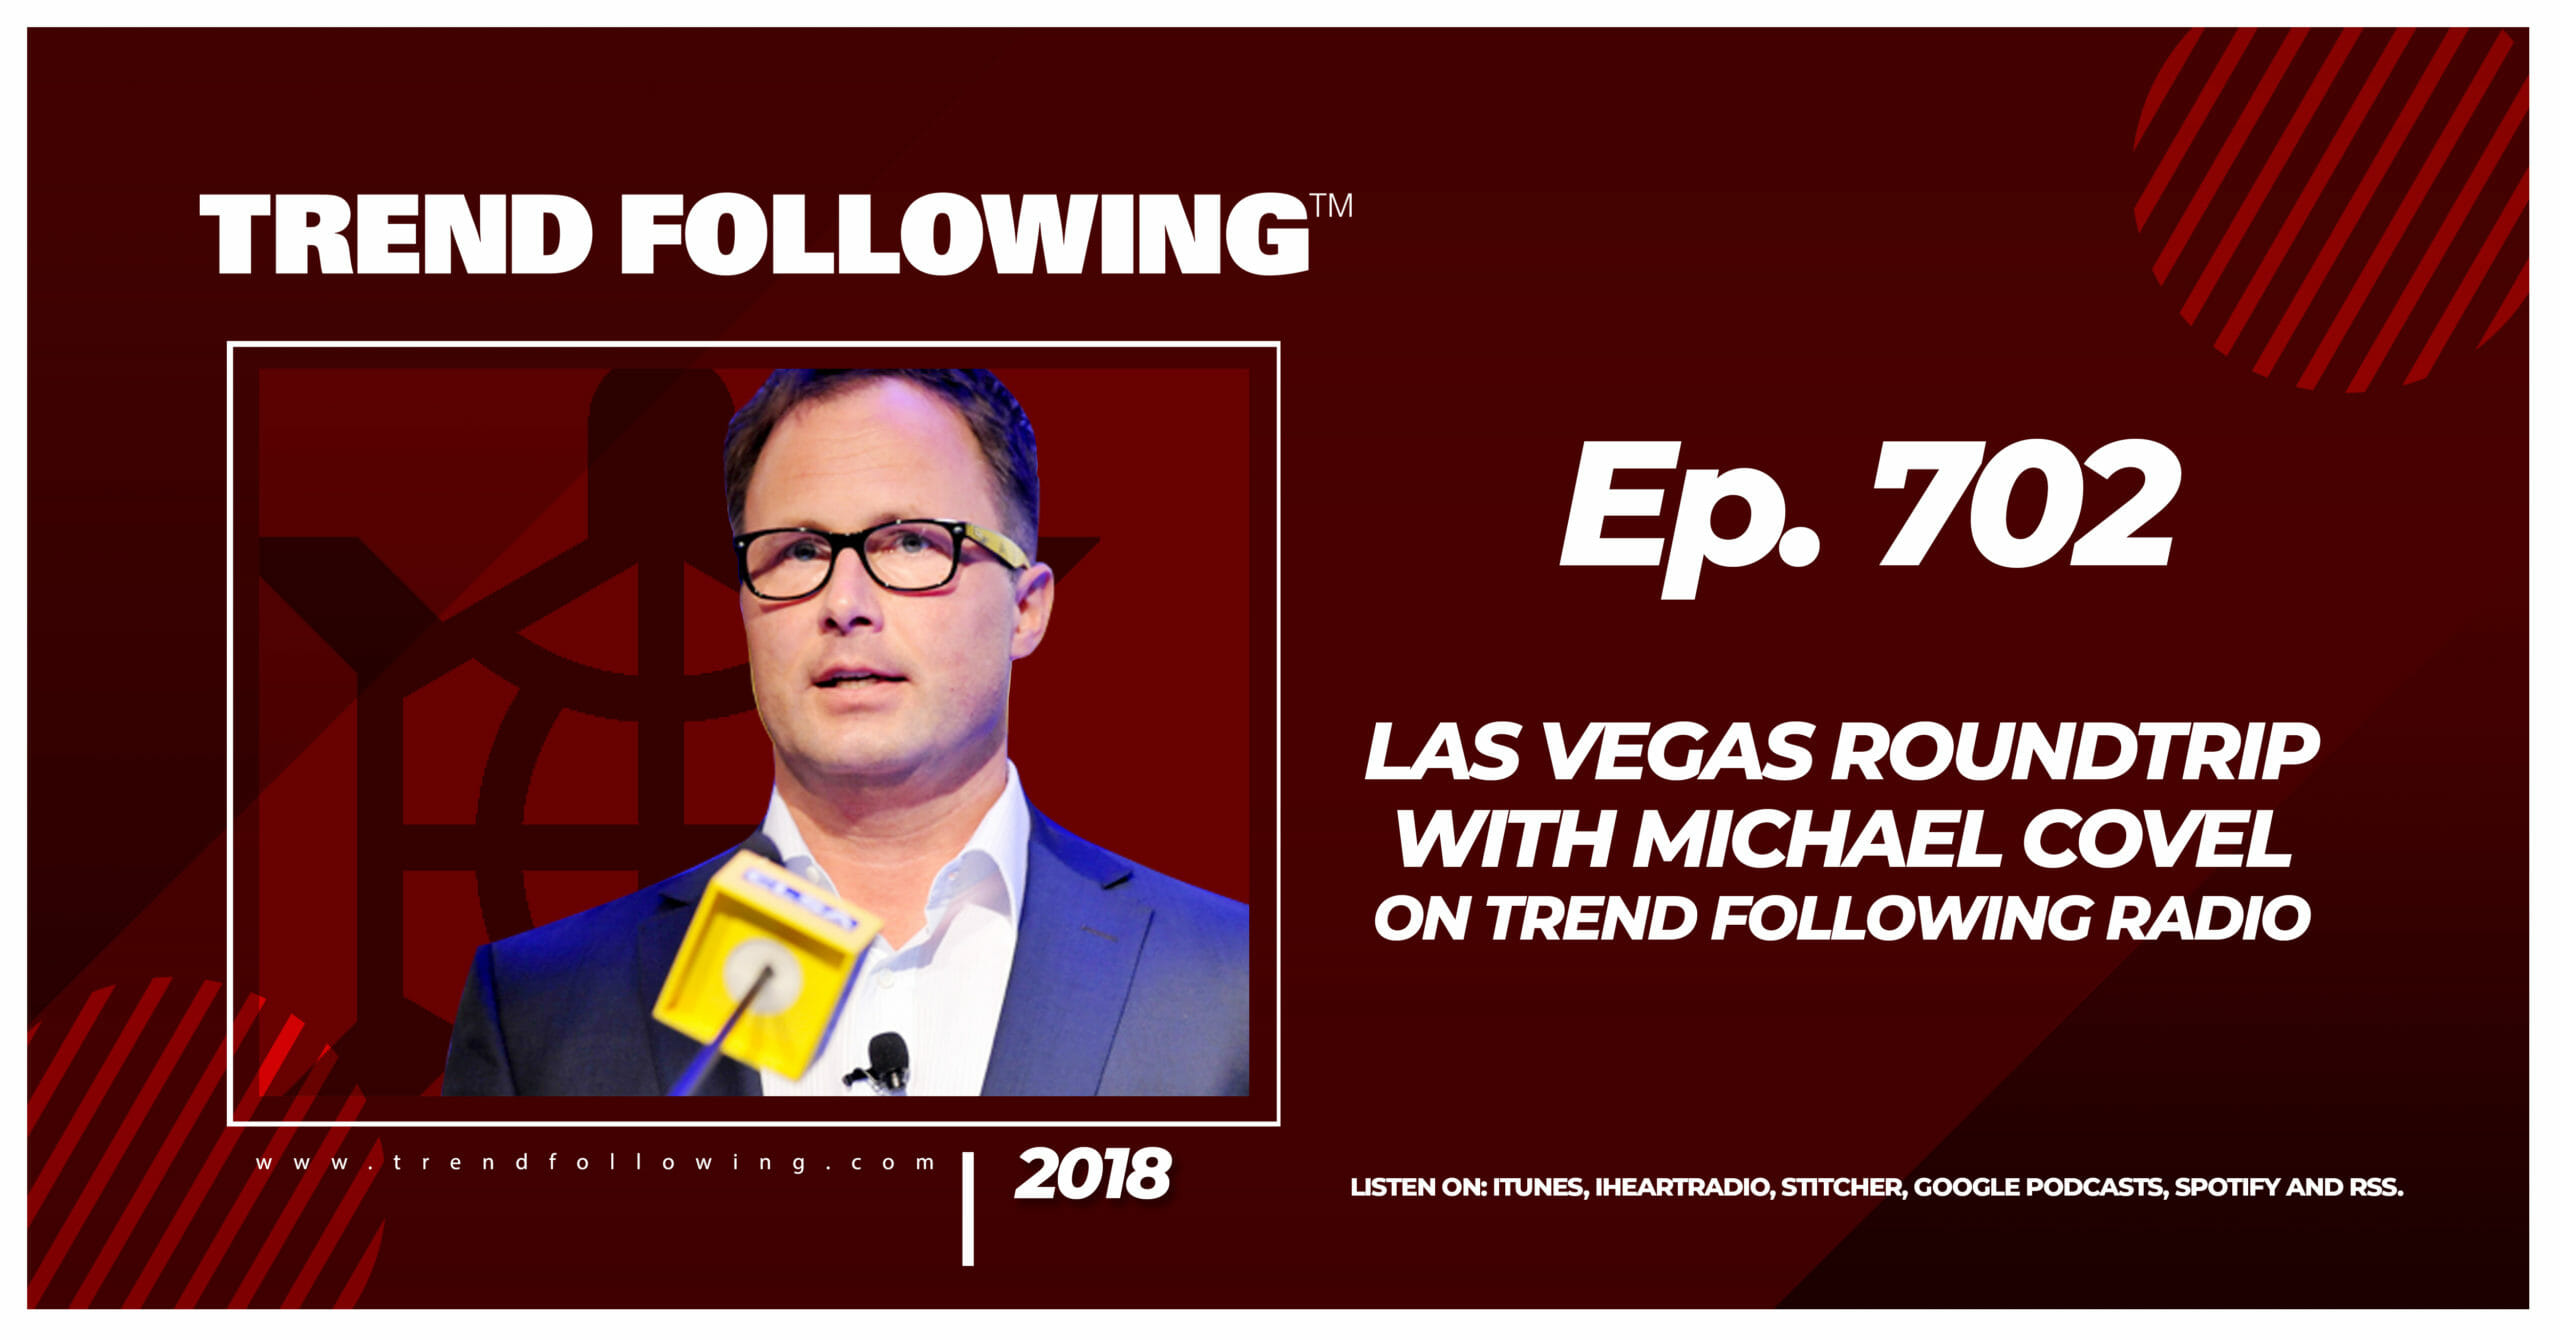 Las Vegas Roundtrip with Michael Covel on Trend Following Radio